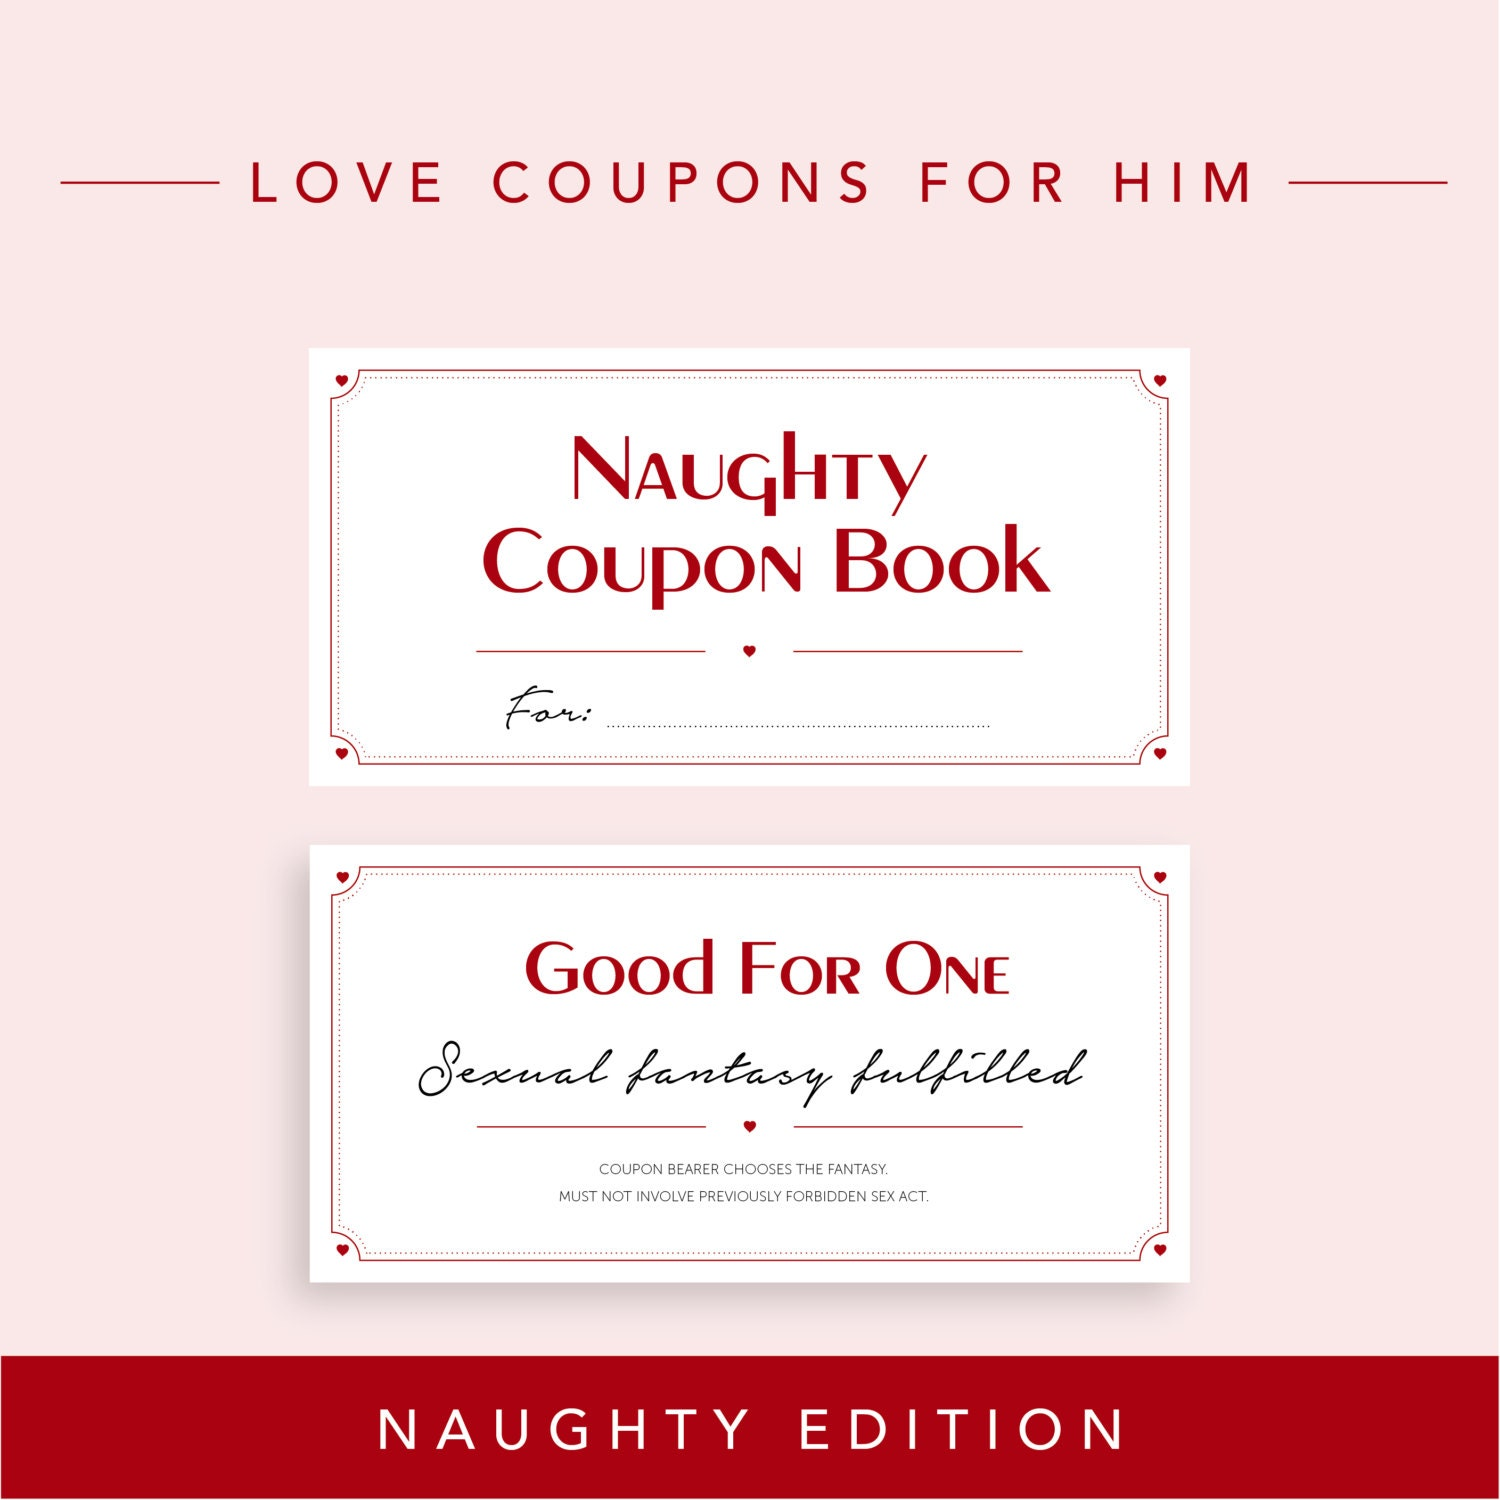 Naughty coupons for him